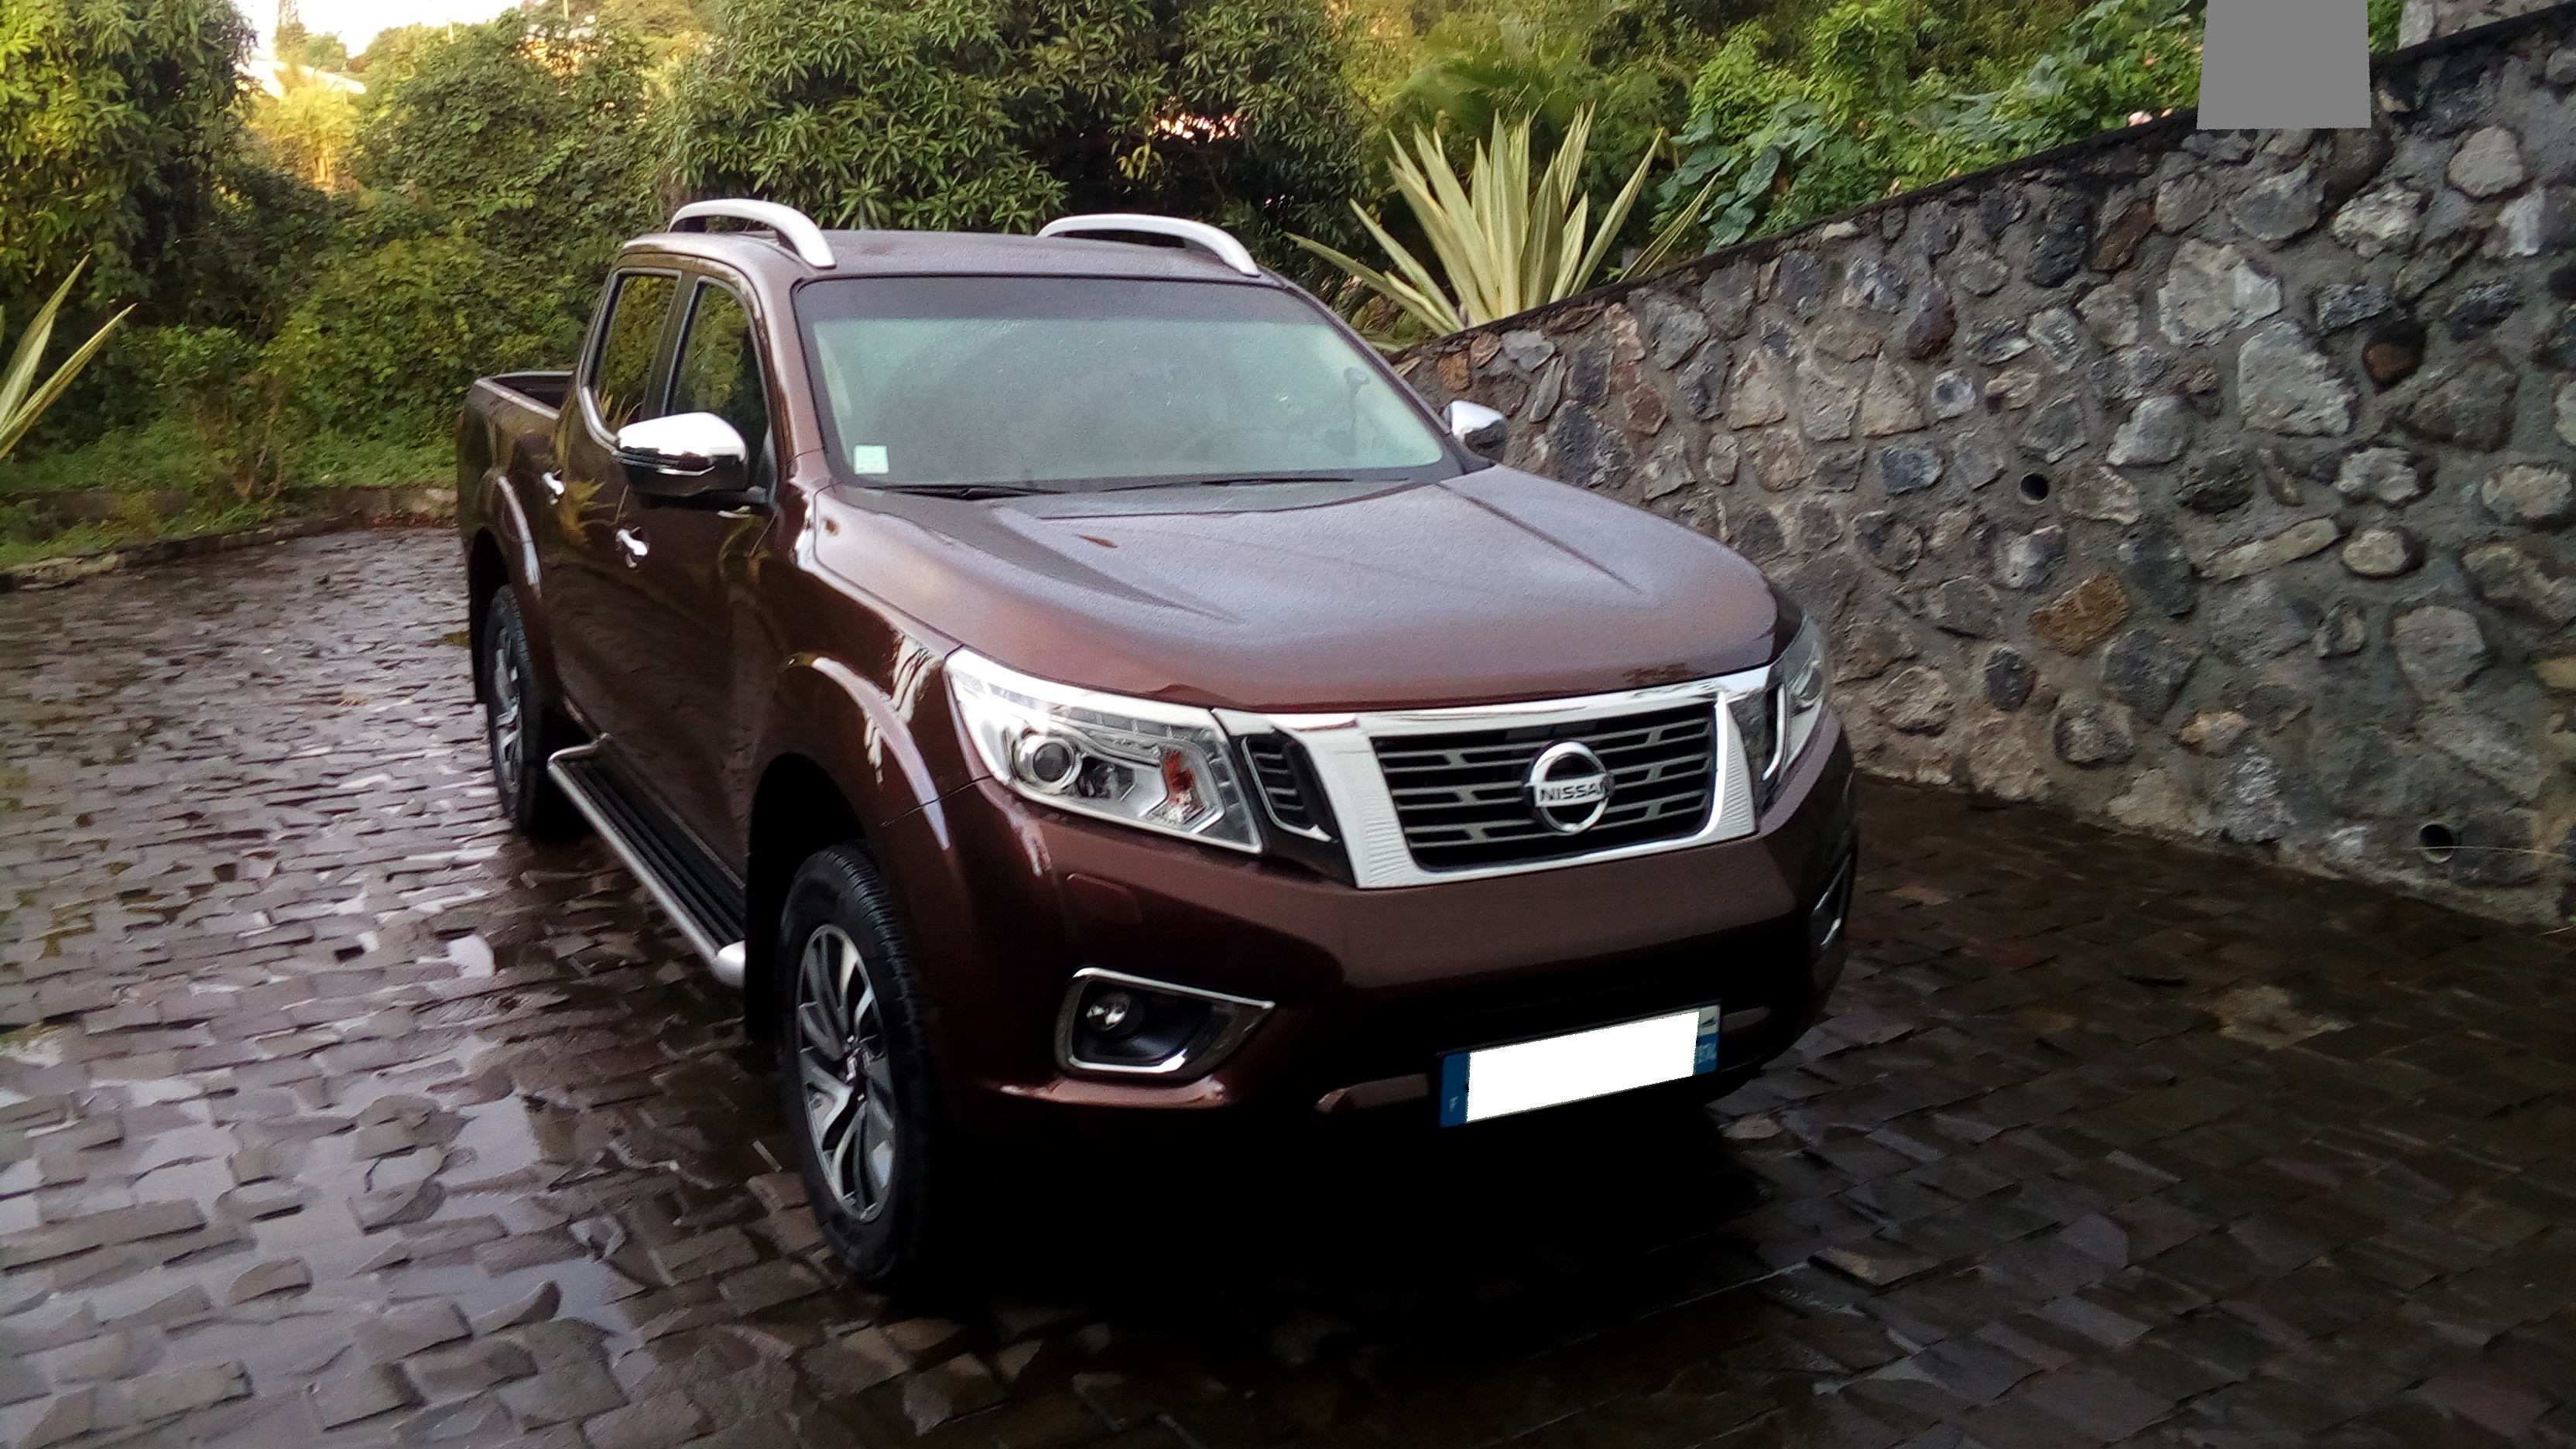 PHOTO NISSAN NAVARAIMG_20170609_171908